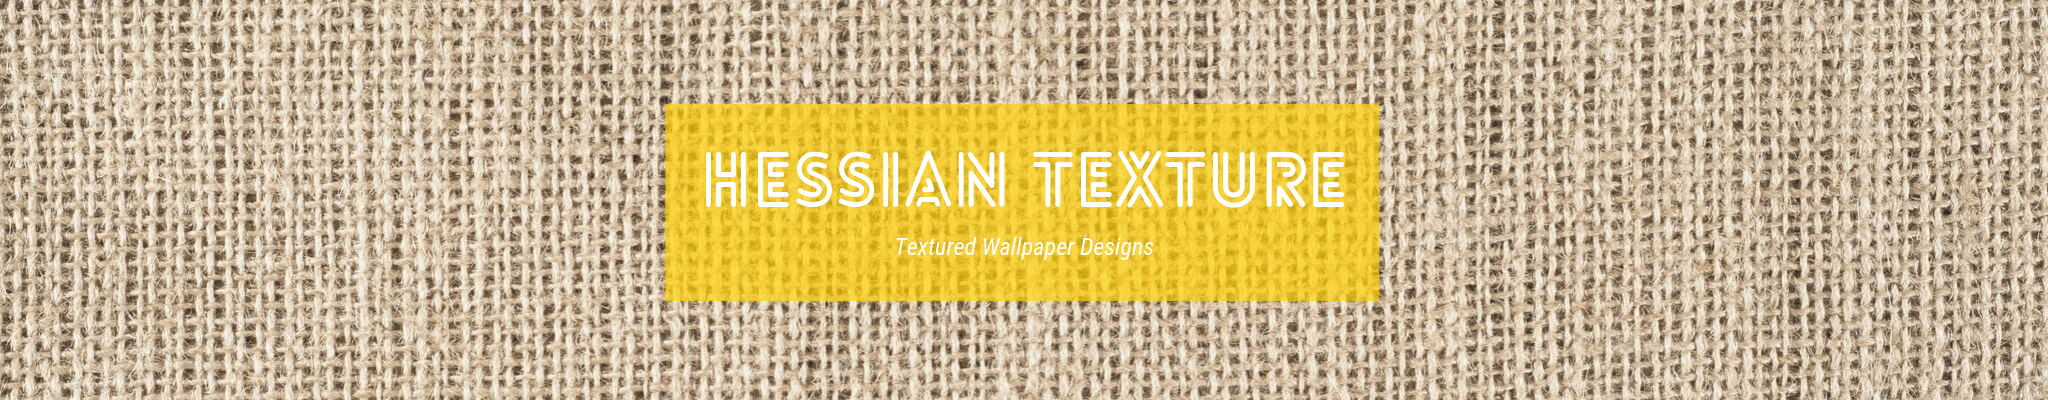 Hessian Texture Wallpaper